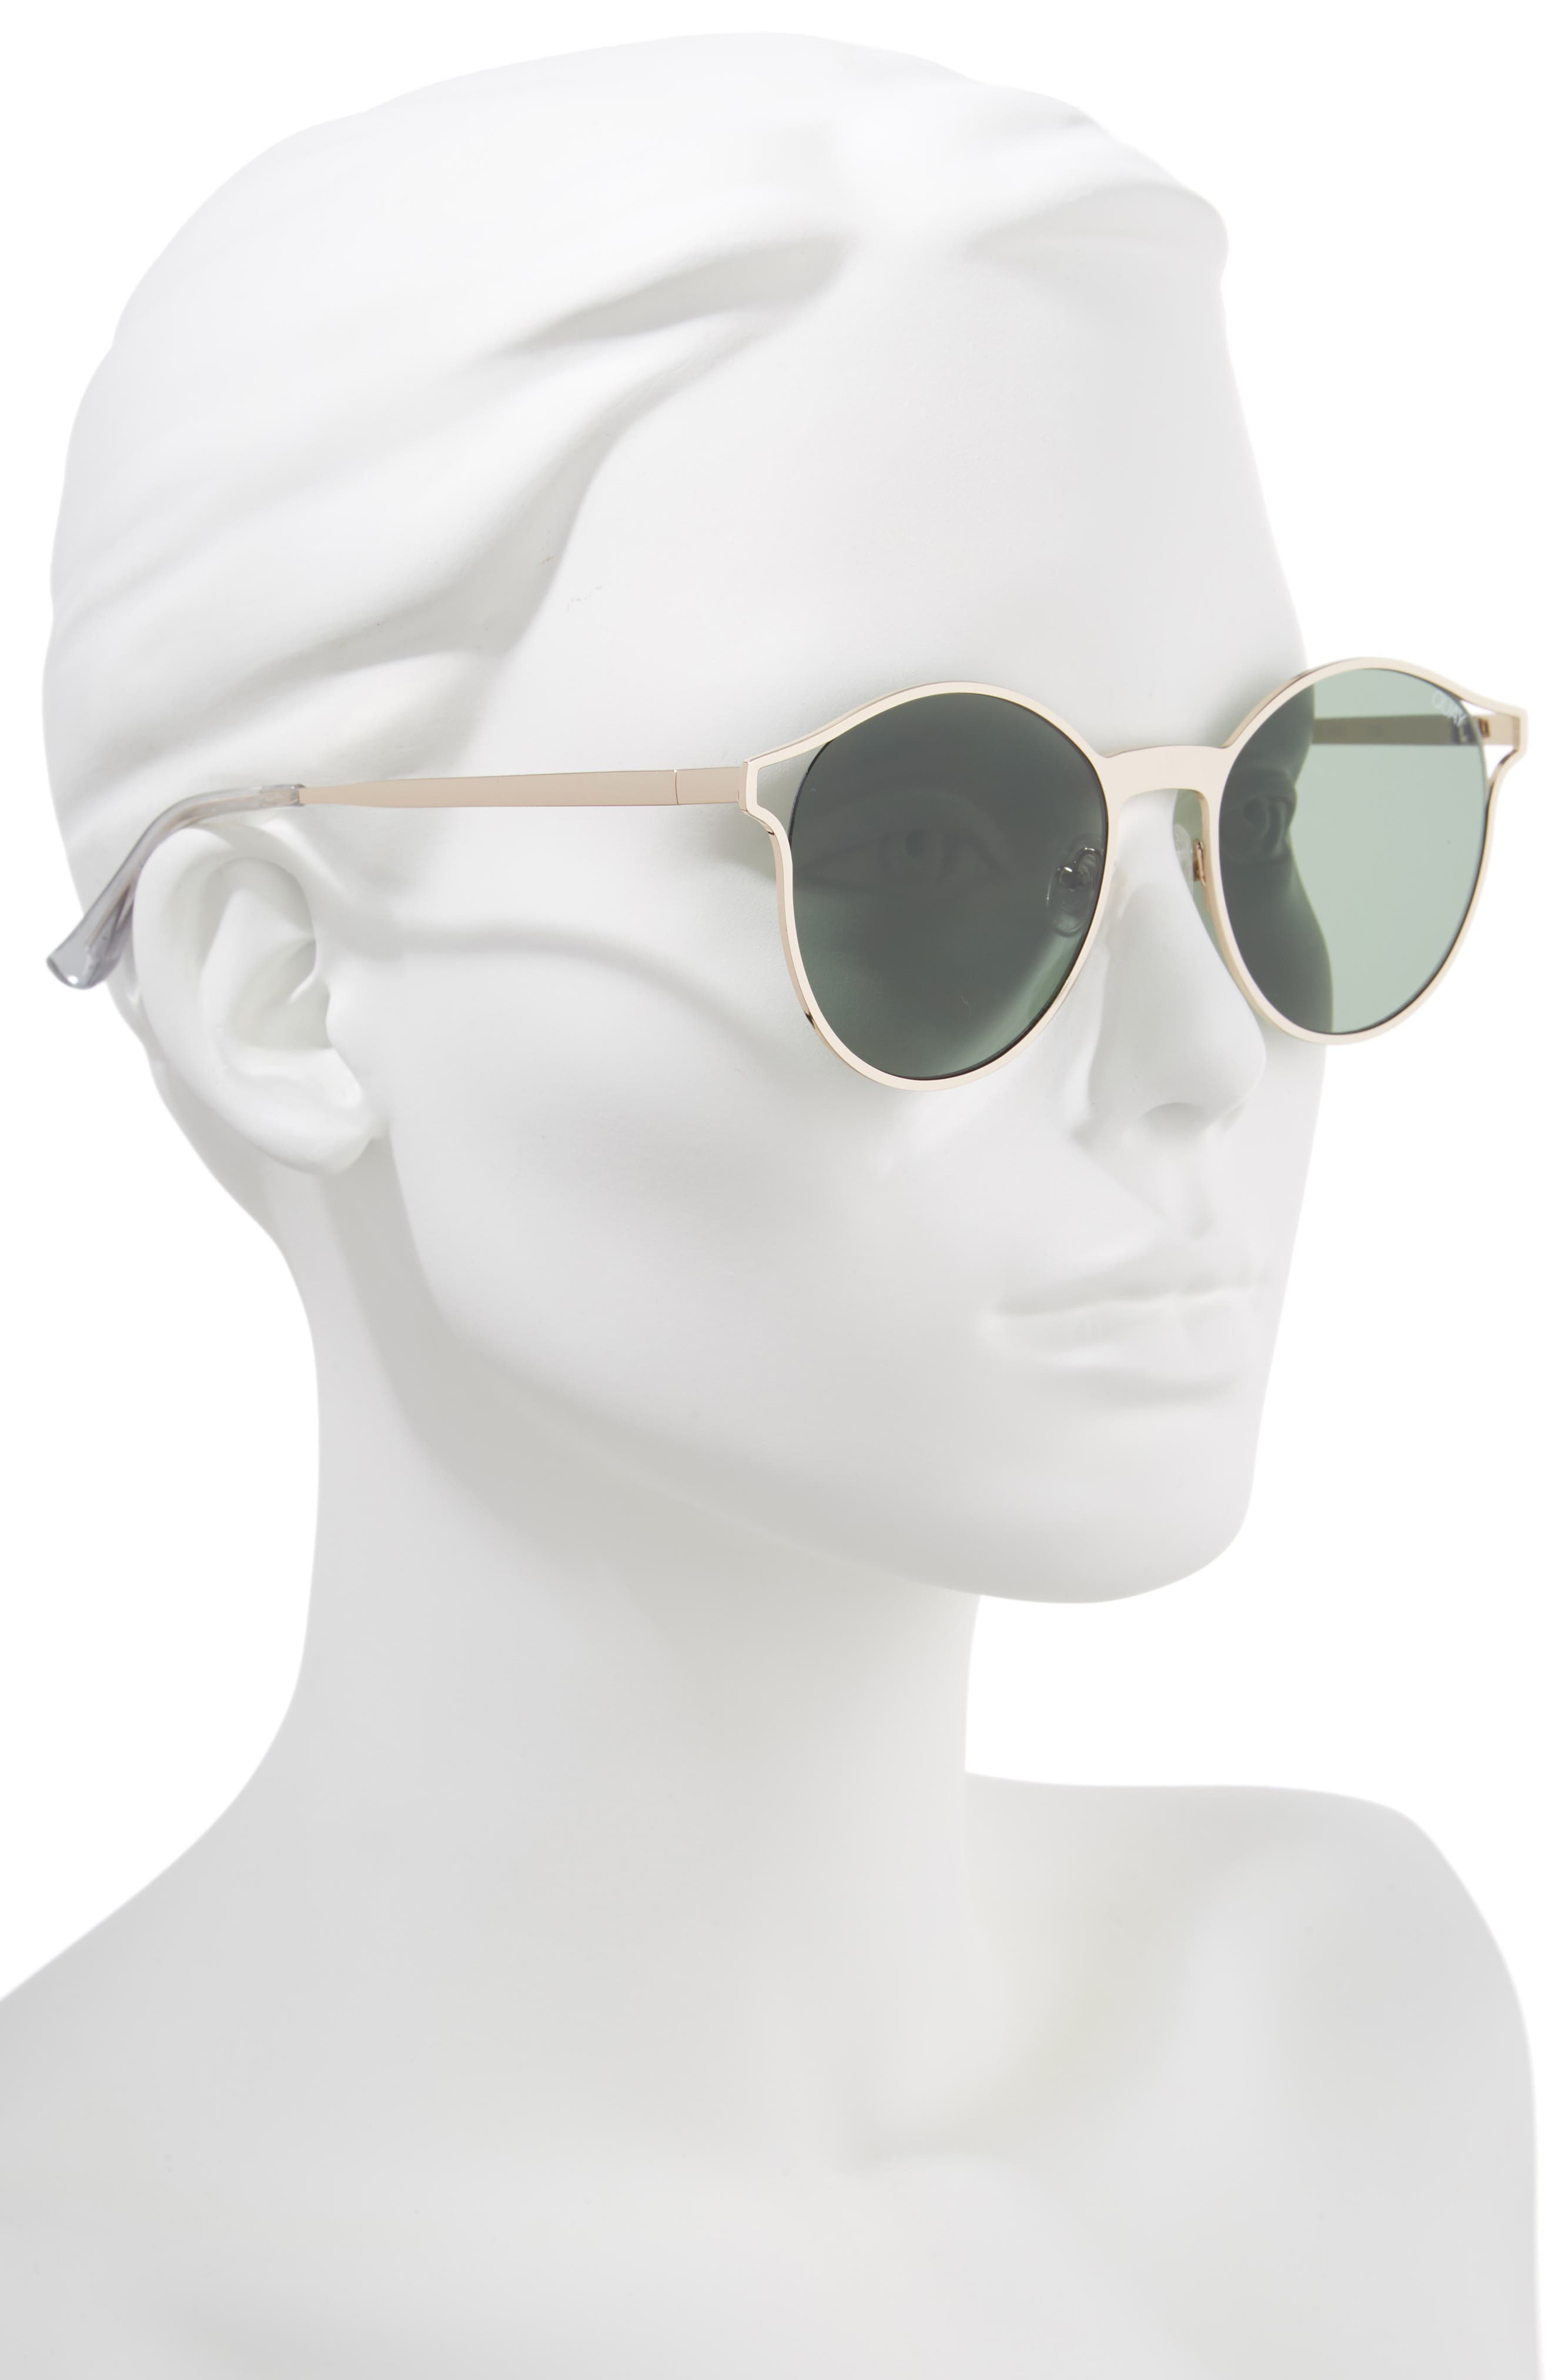 Here We Are 53mm Round Sunglasses,                             Alternate thumbnail 2, color,                             Gold/ Green